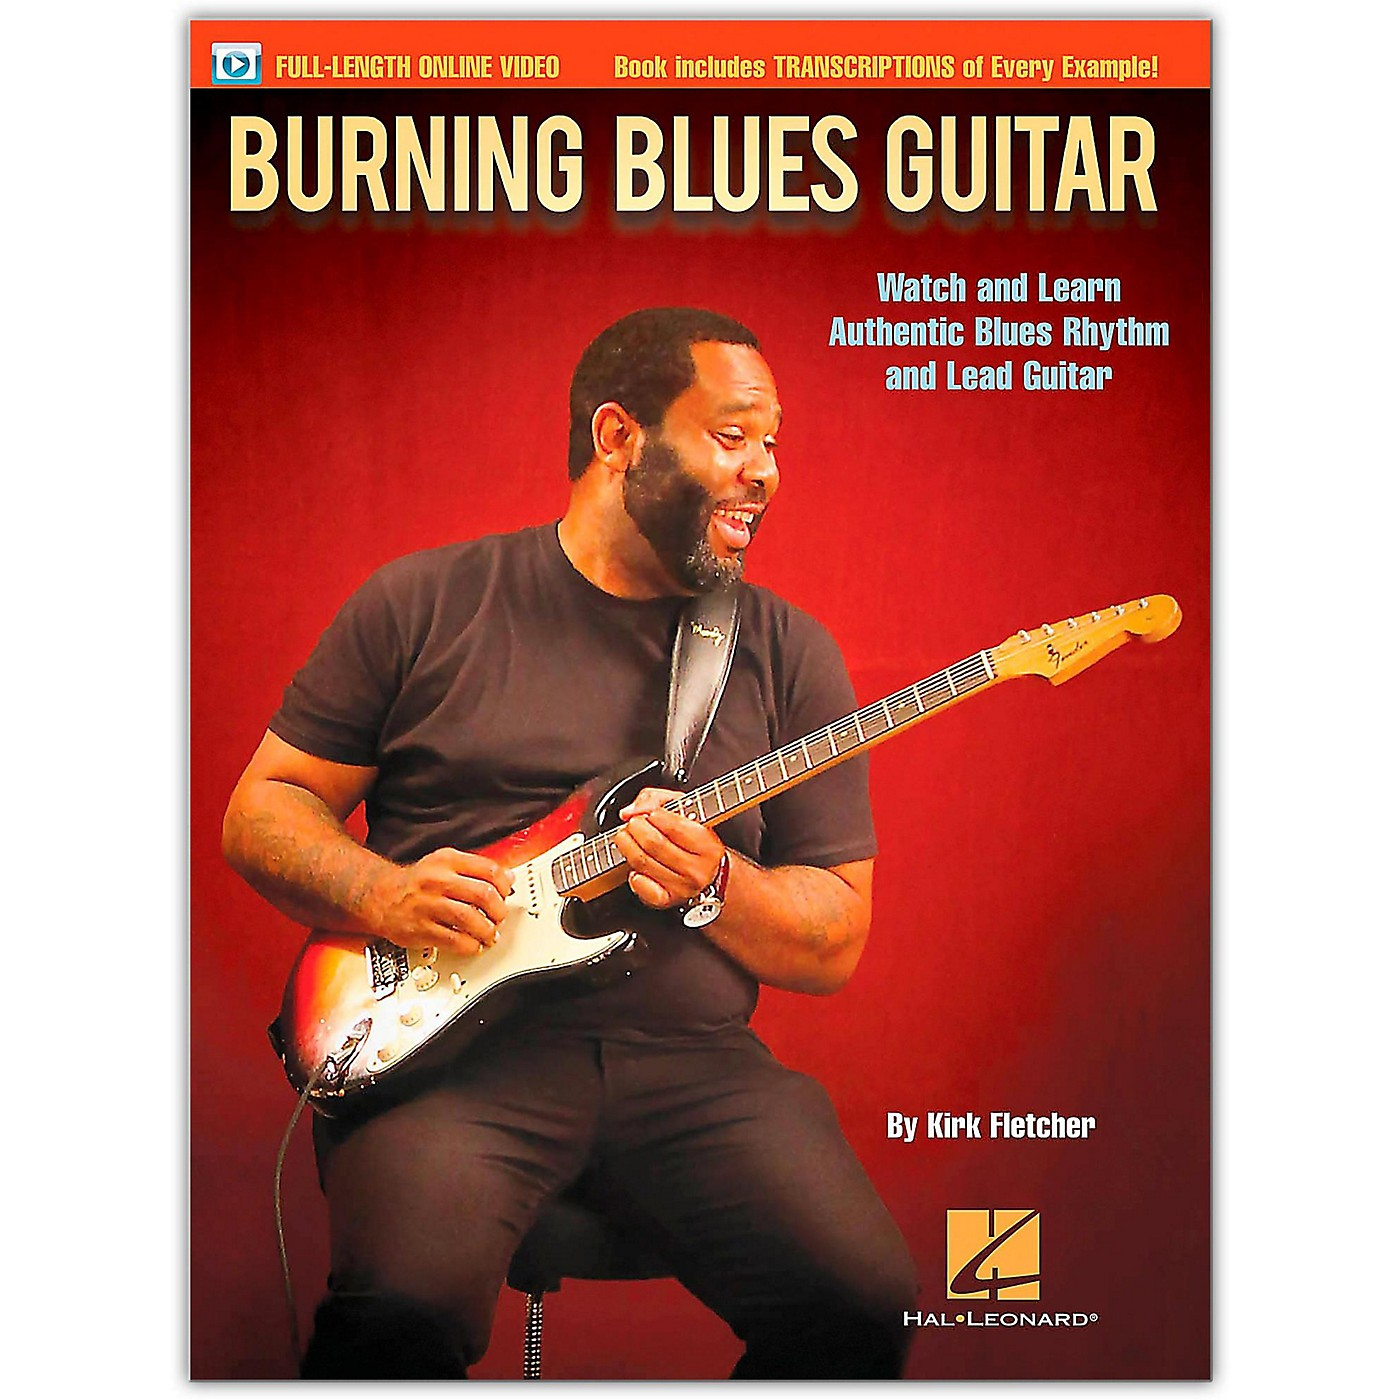 Hal Leonard Burning Blues Guitar - Watch and Learn Authentic Blues Rhythm and Lead Guitar Book/Online Video thumbnail